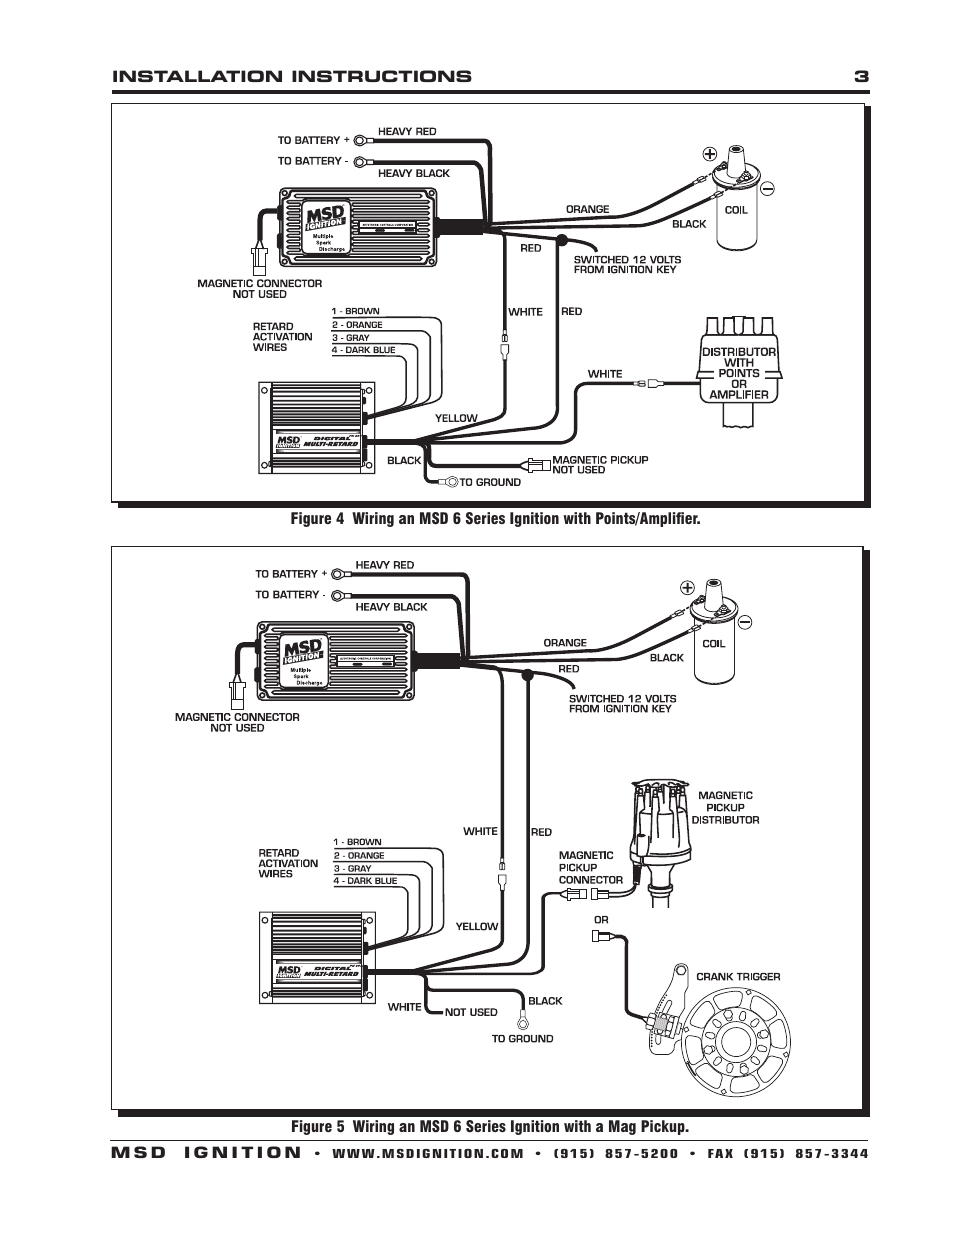 msd 8975 wiring diagram quick start guide of wiring diagram • msd 8975 wiring diagram